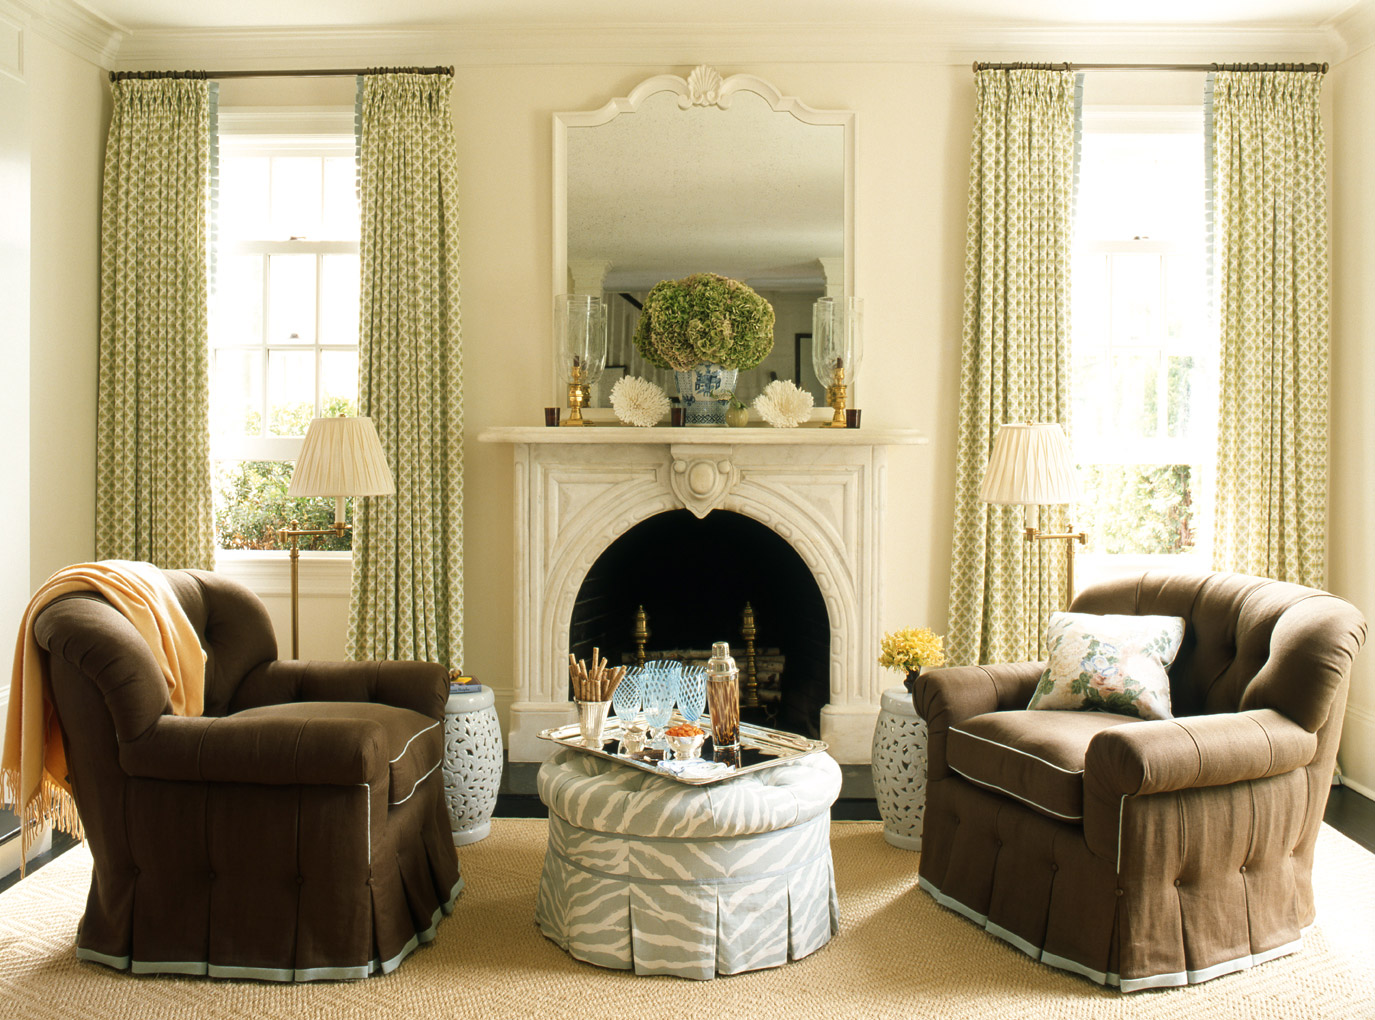 decorating styles for living room how to decorate series finding your decorating style 21850